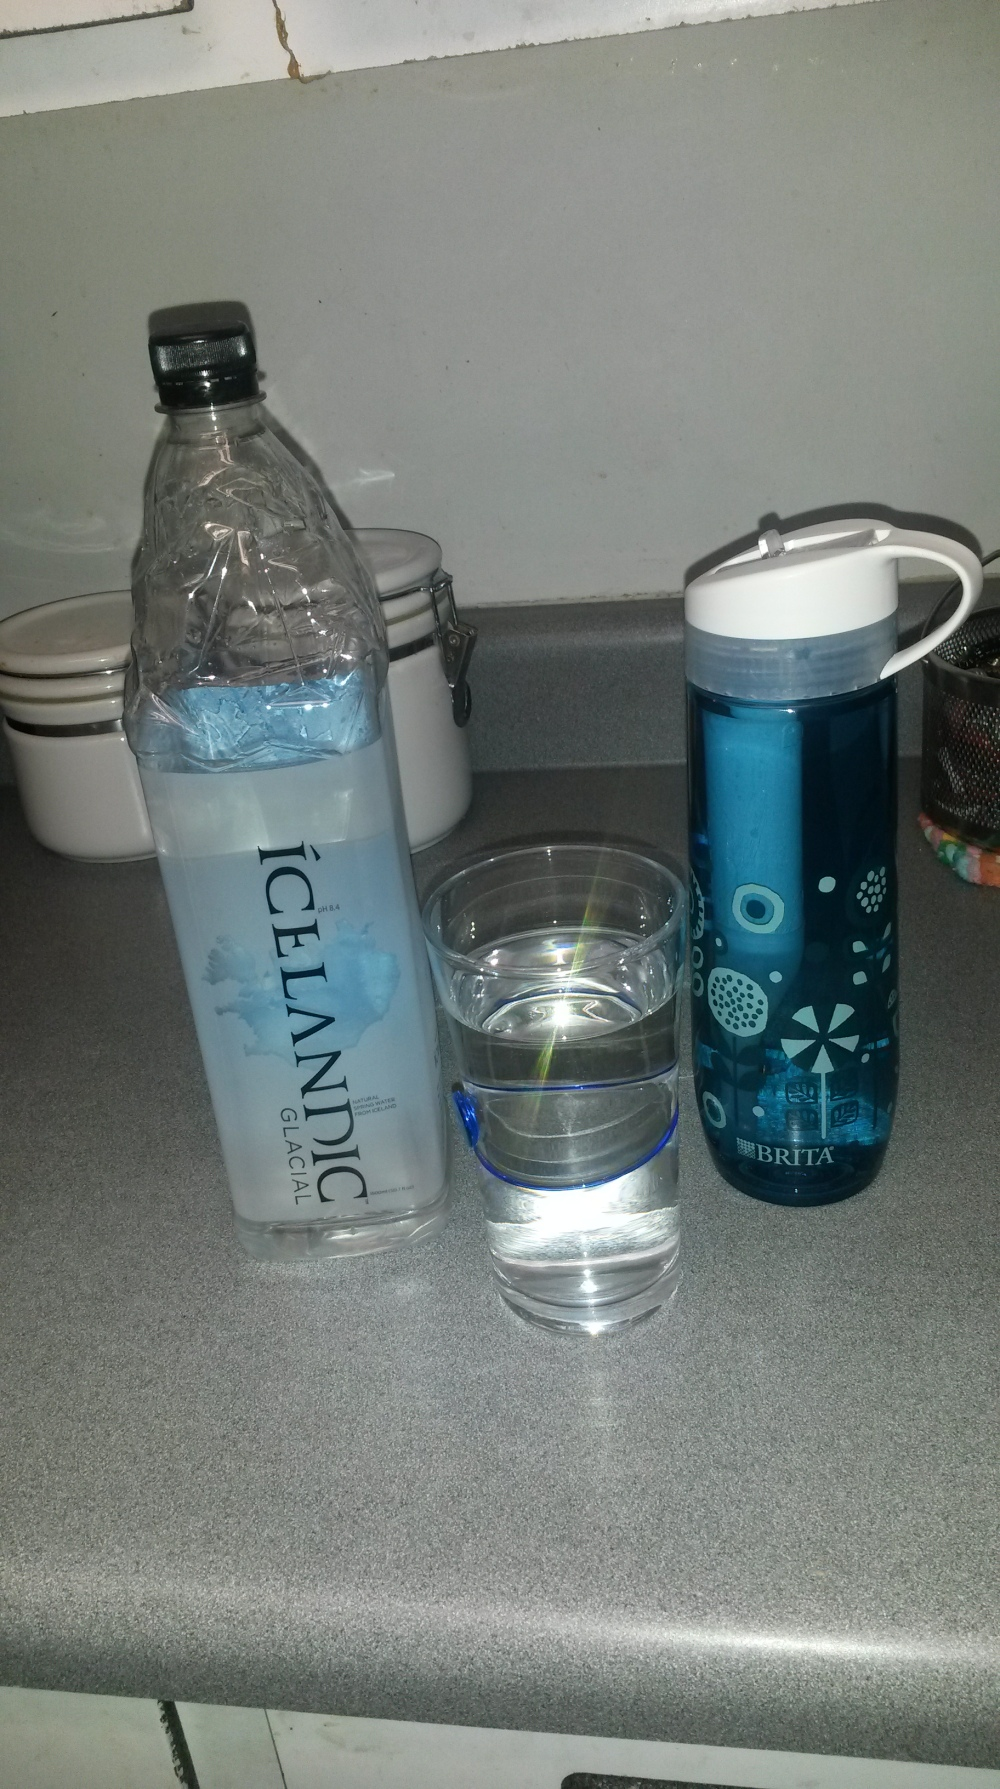 Icelandic vs Brita Filter. What's your fave?